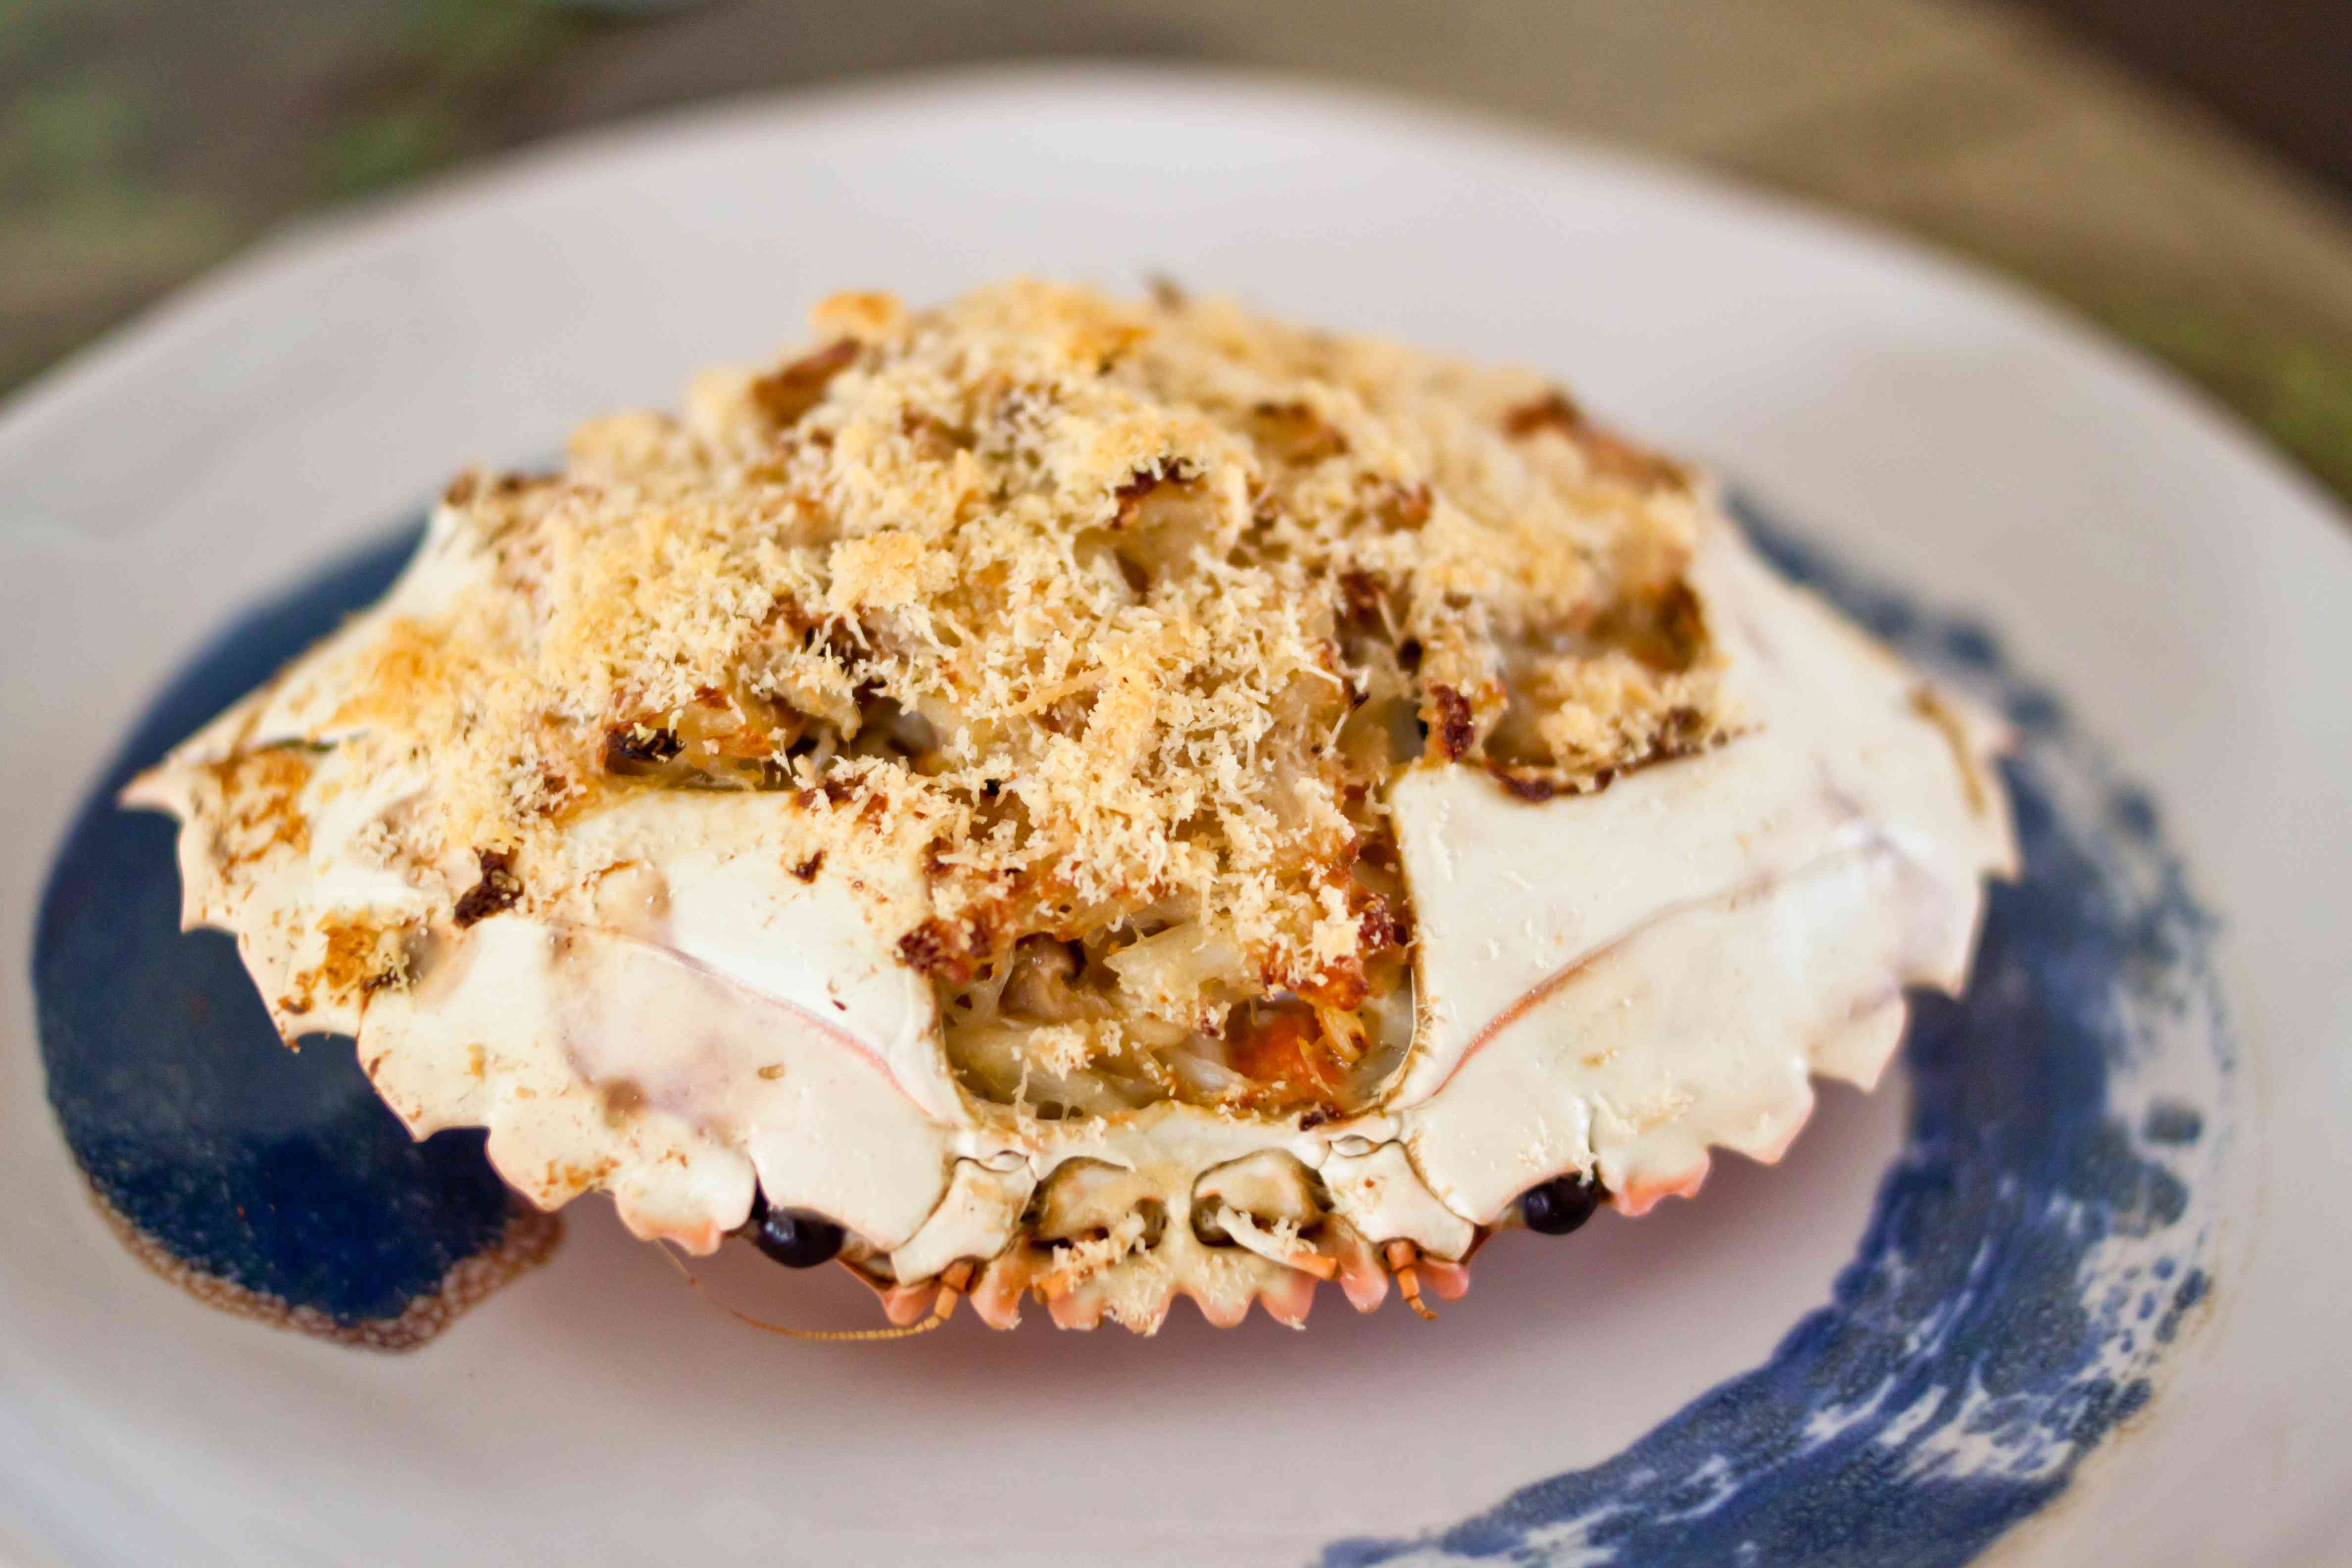 Baked stuffed crab shell